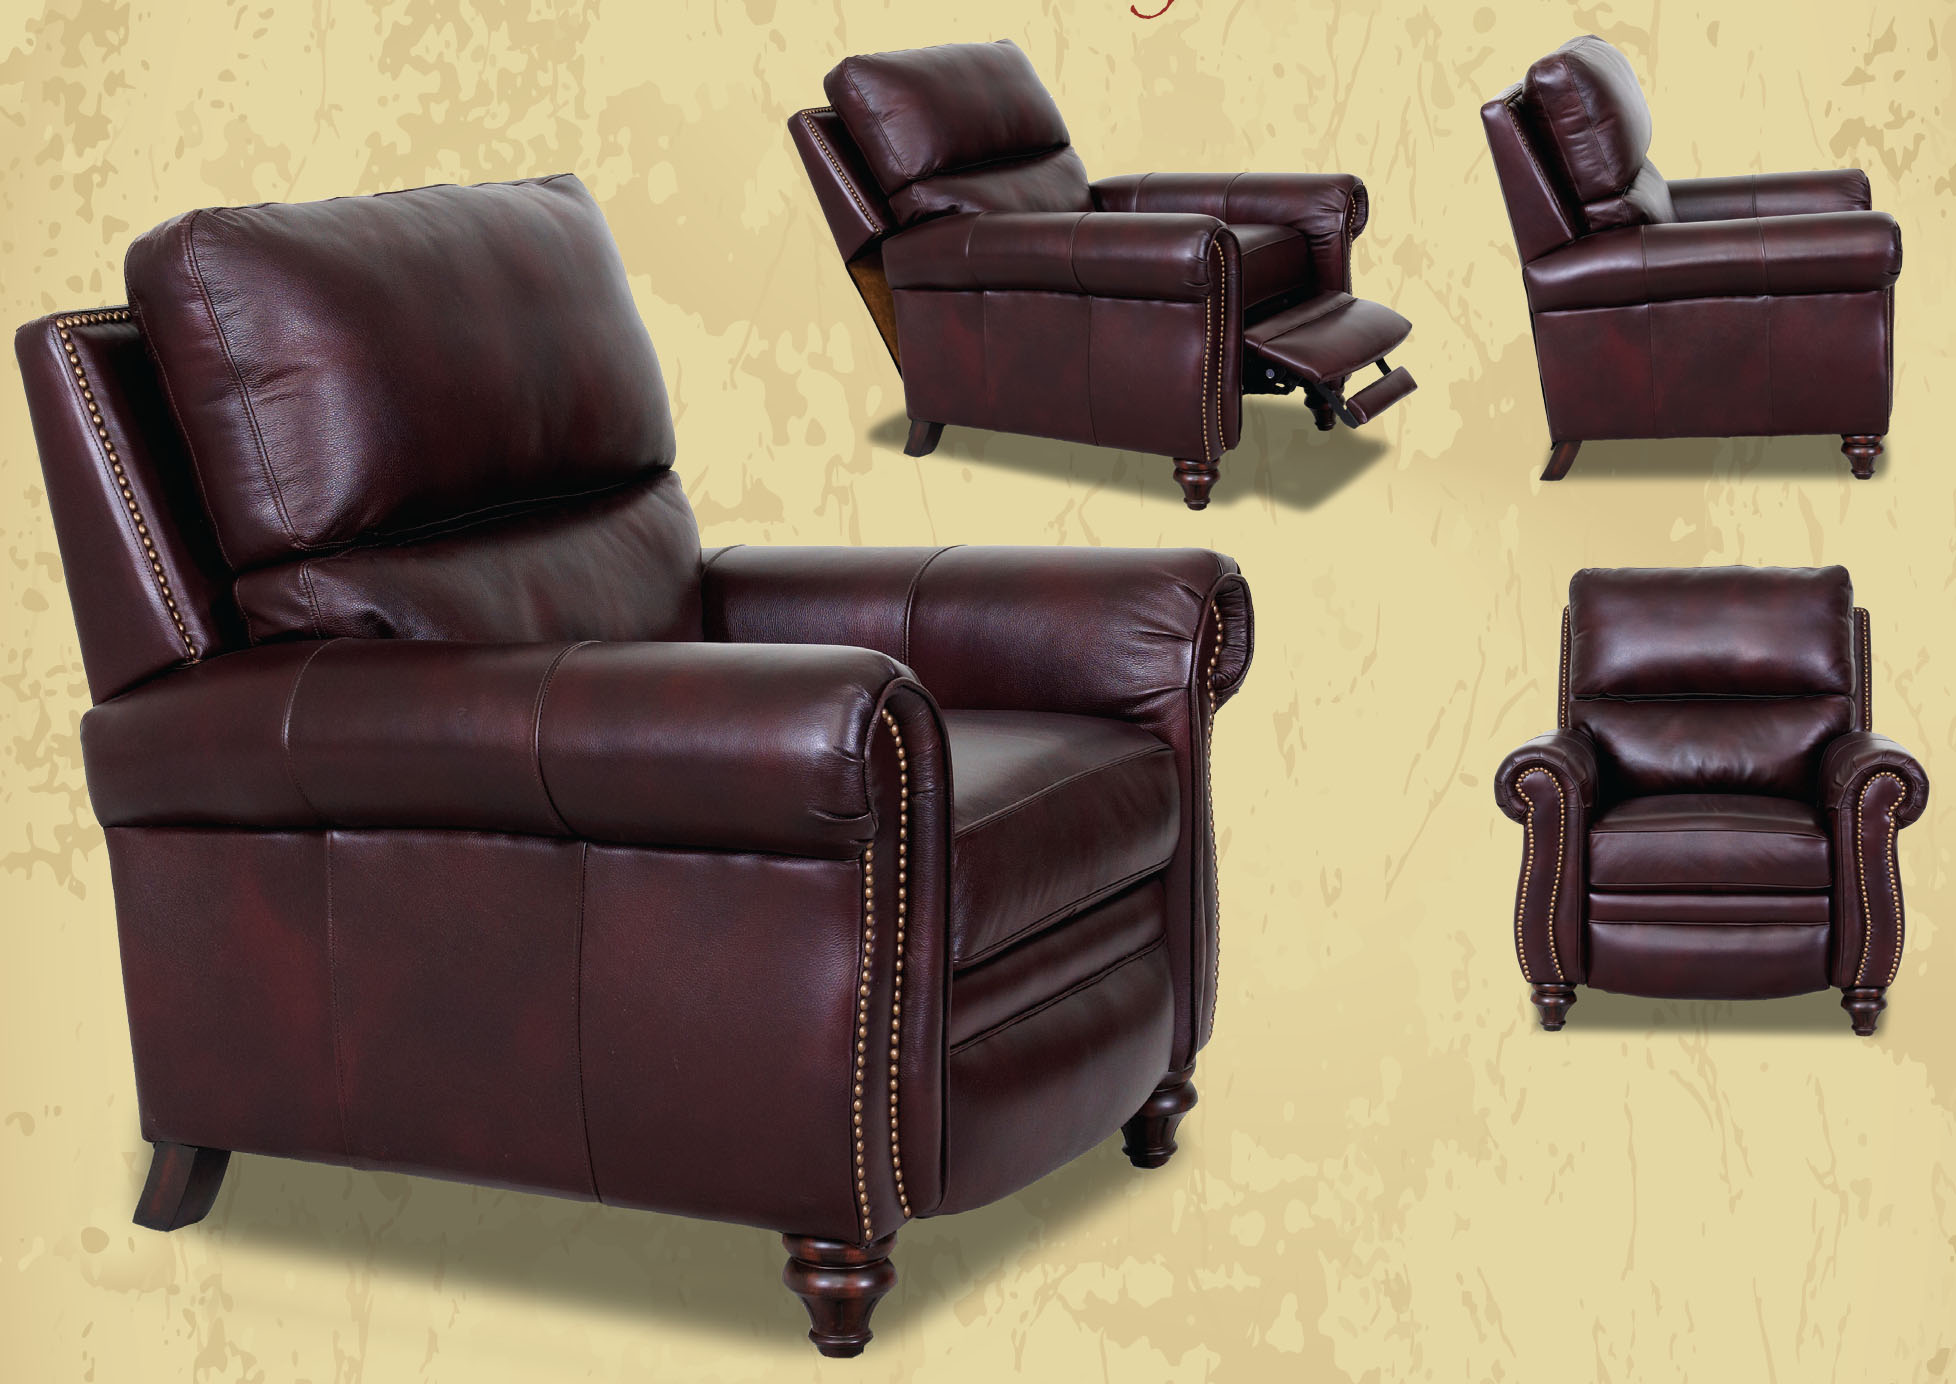 Leather Recliners San Diego